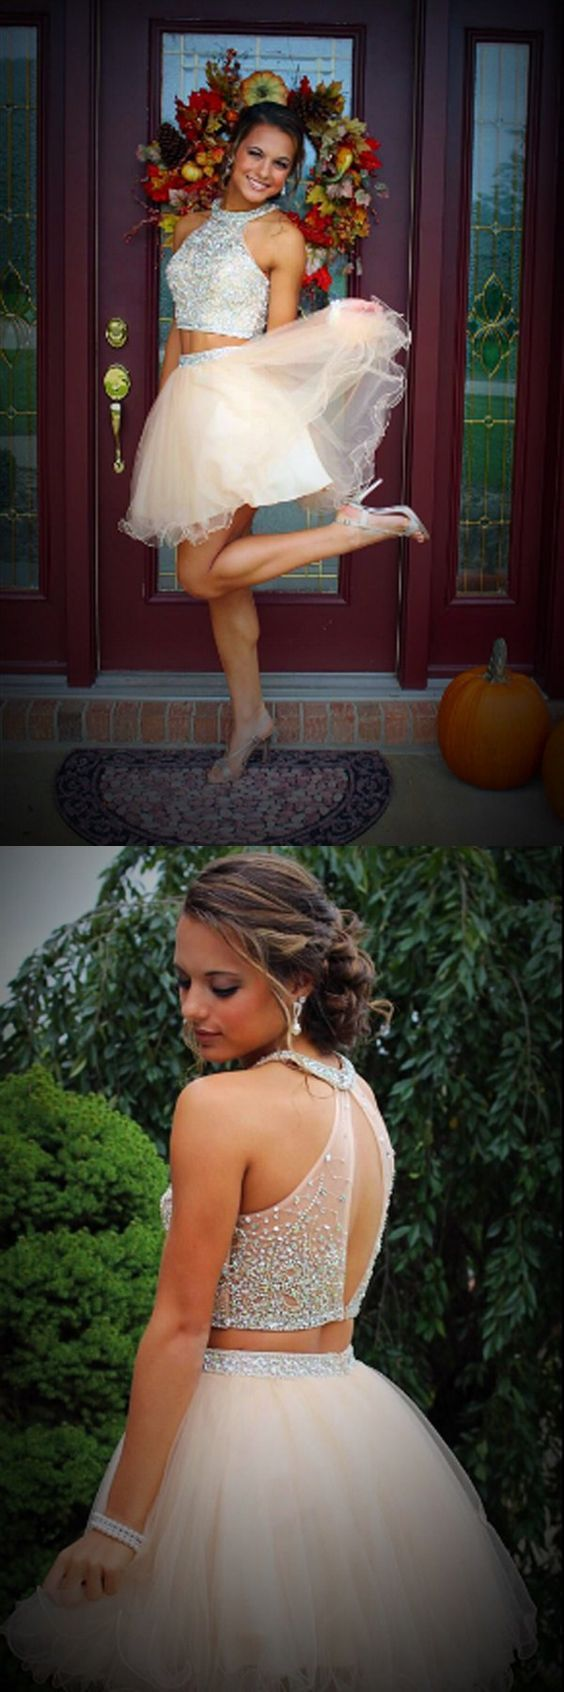 2016 homecoming dresses,homecoming dresses,two-piece homecoming dresses,blush homecoming dresses,modest homecoming dresses,sparkle homecoming dresses,cheap two-piece homecoming dresses for teens